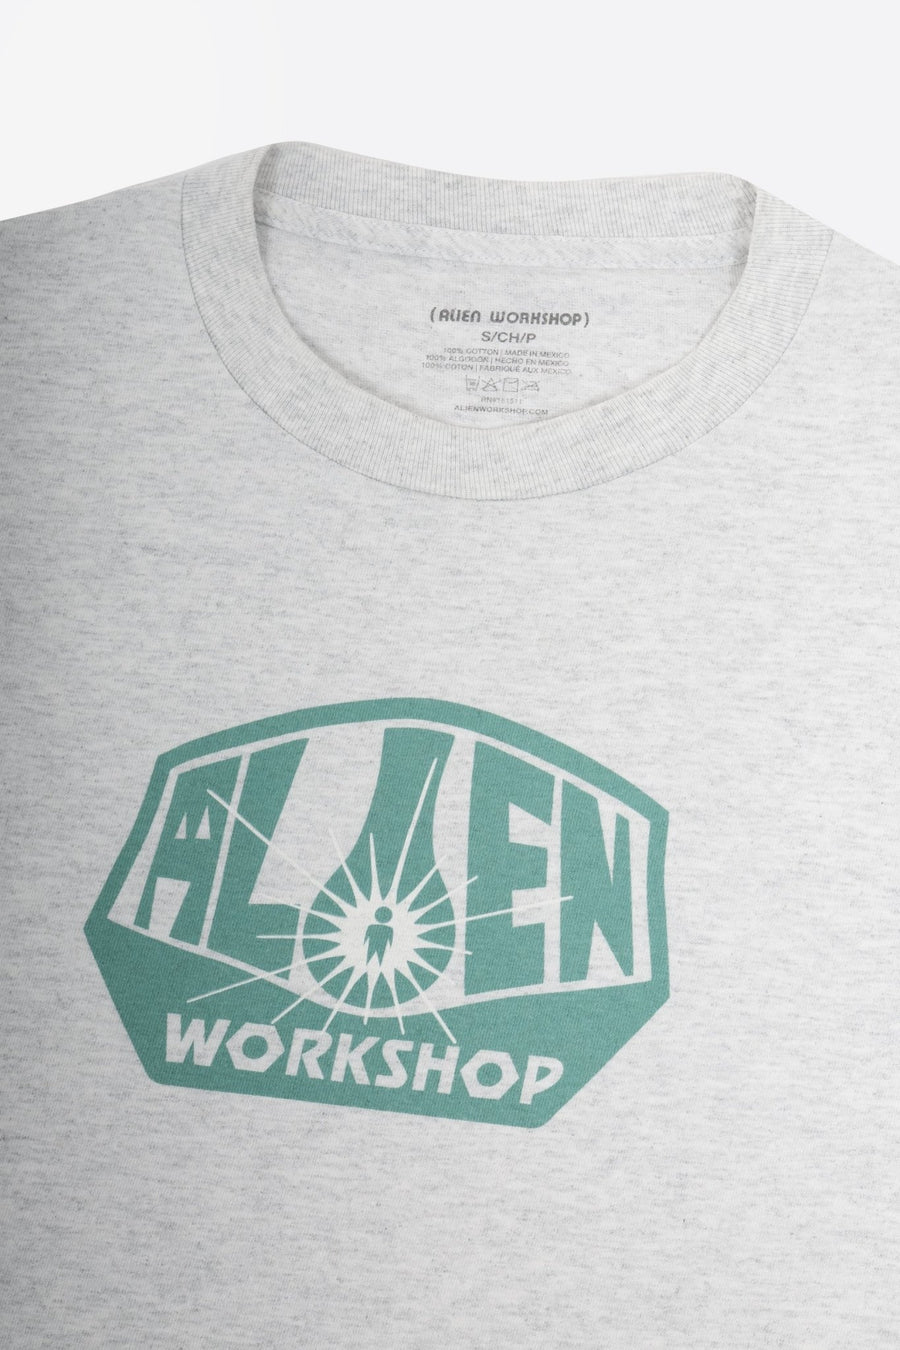 T-shirt Alien Ware Workshop - WASTED PARIS